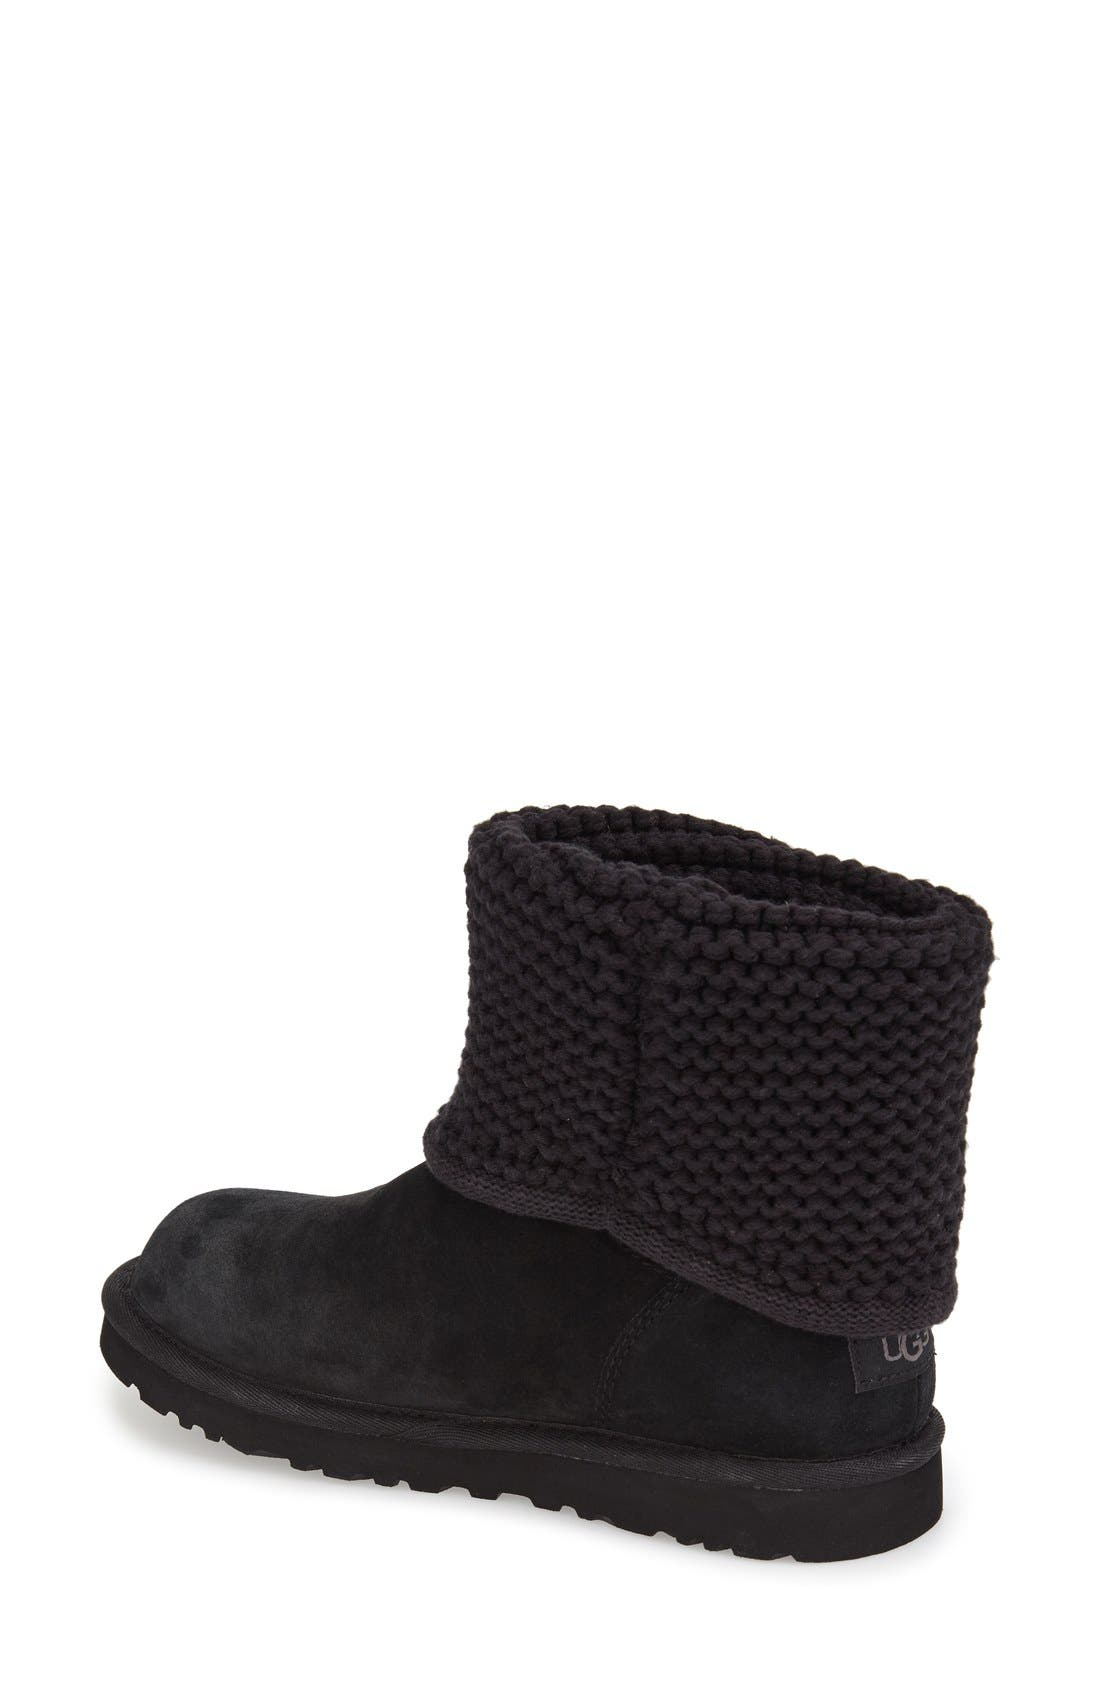 Shaina Knit Cuff Bootie,                             Alternate thumbnail 5, color,